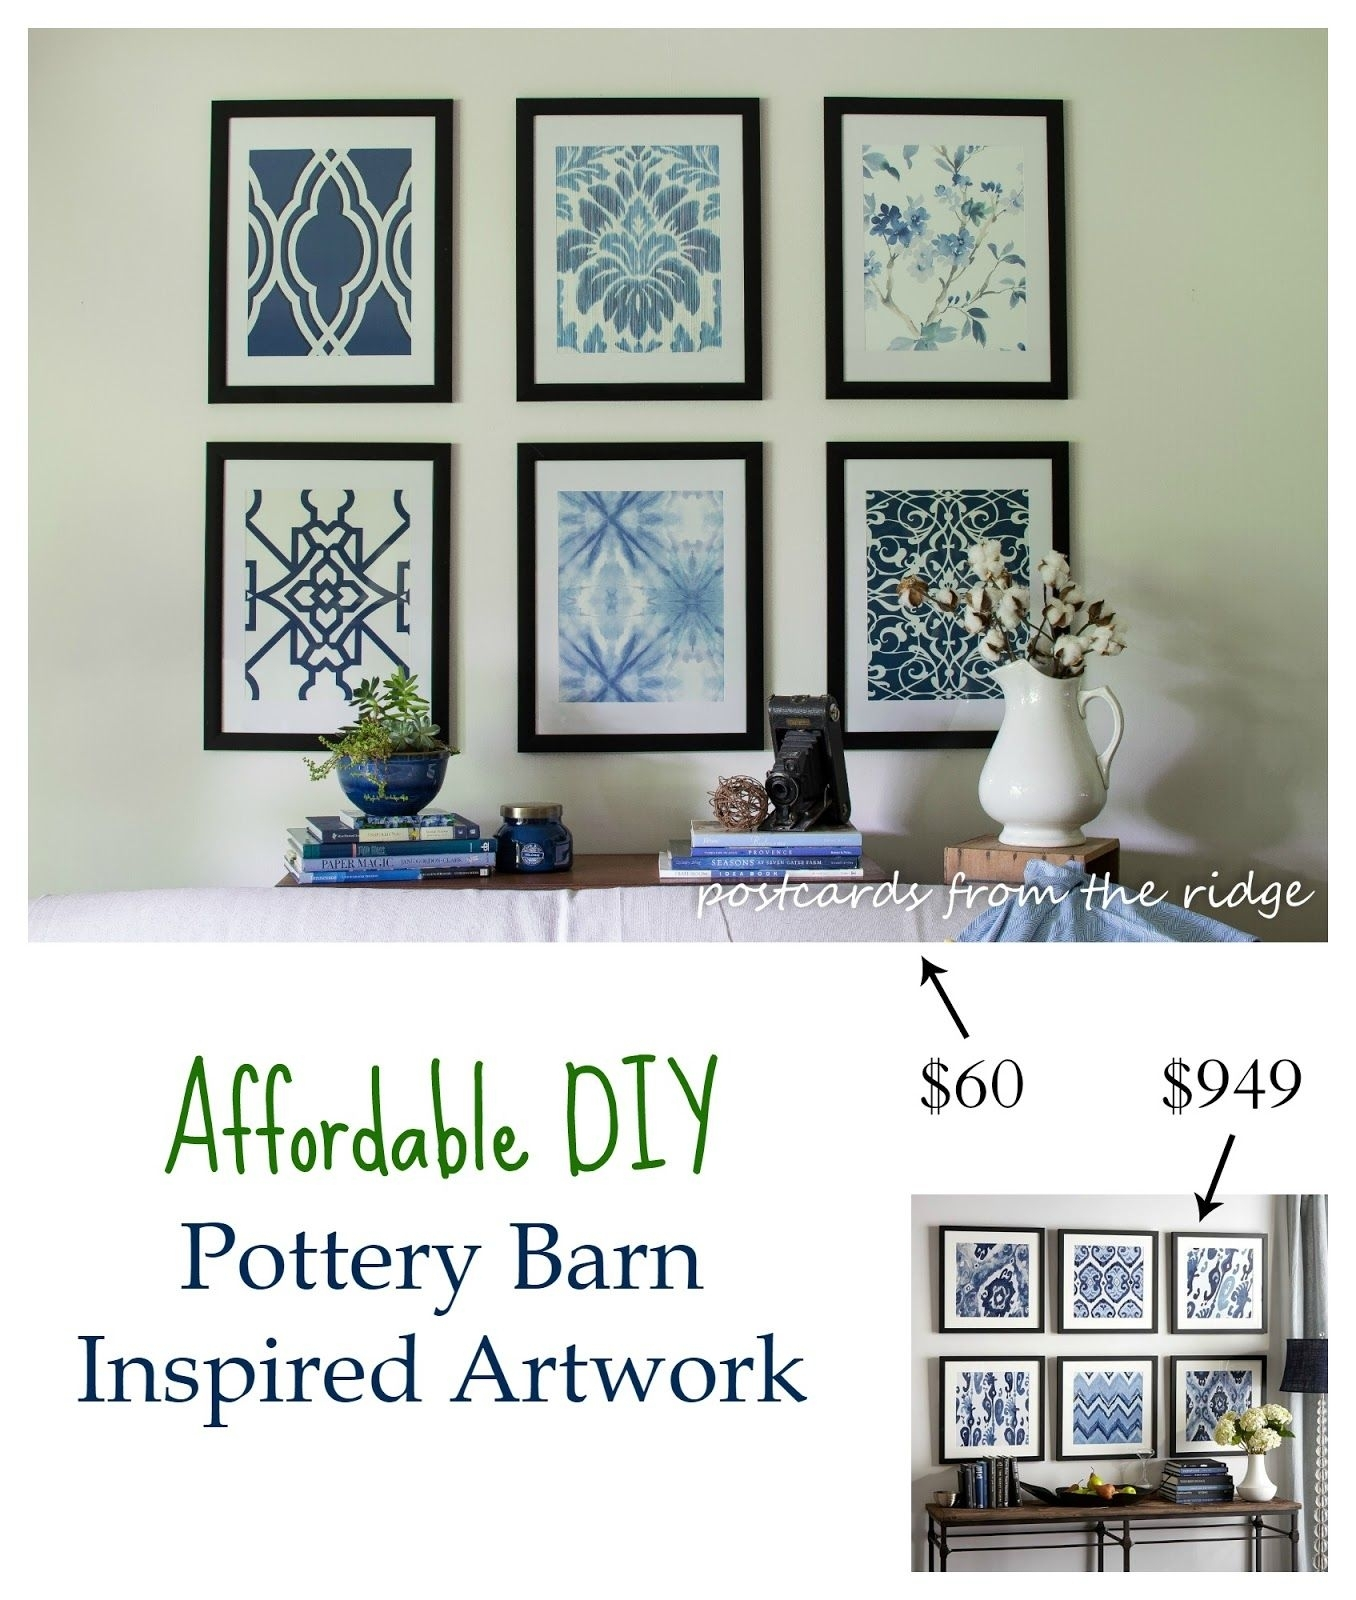 Affordable Diy Artwork Inspiredpottery Barn ~ Rock Your With Latest Affordable Framed Art Prints (View 11 of 15)